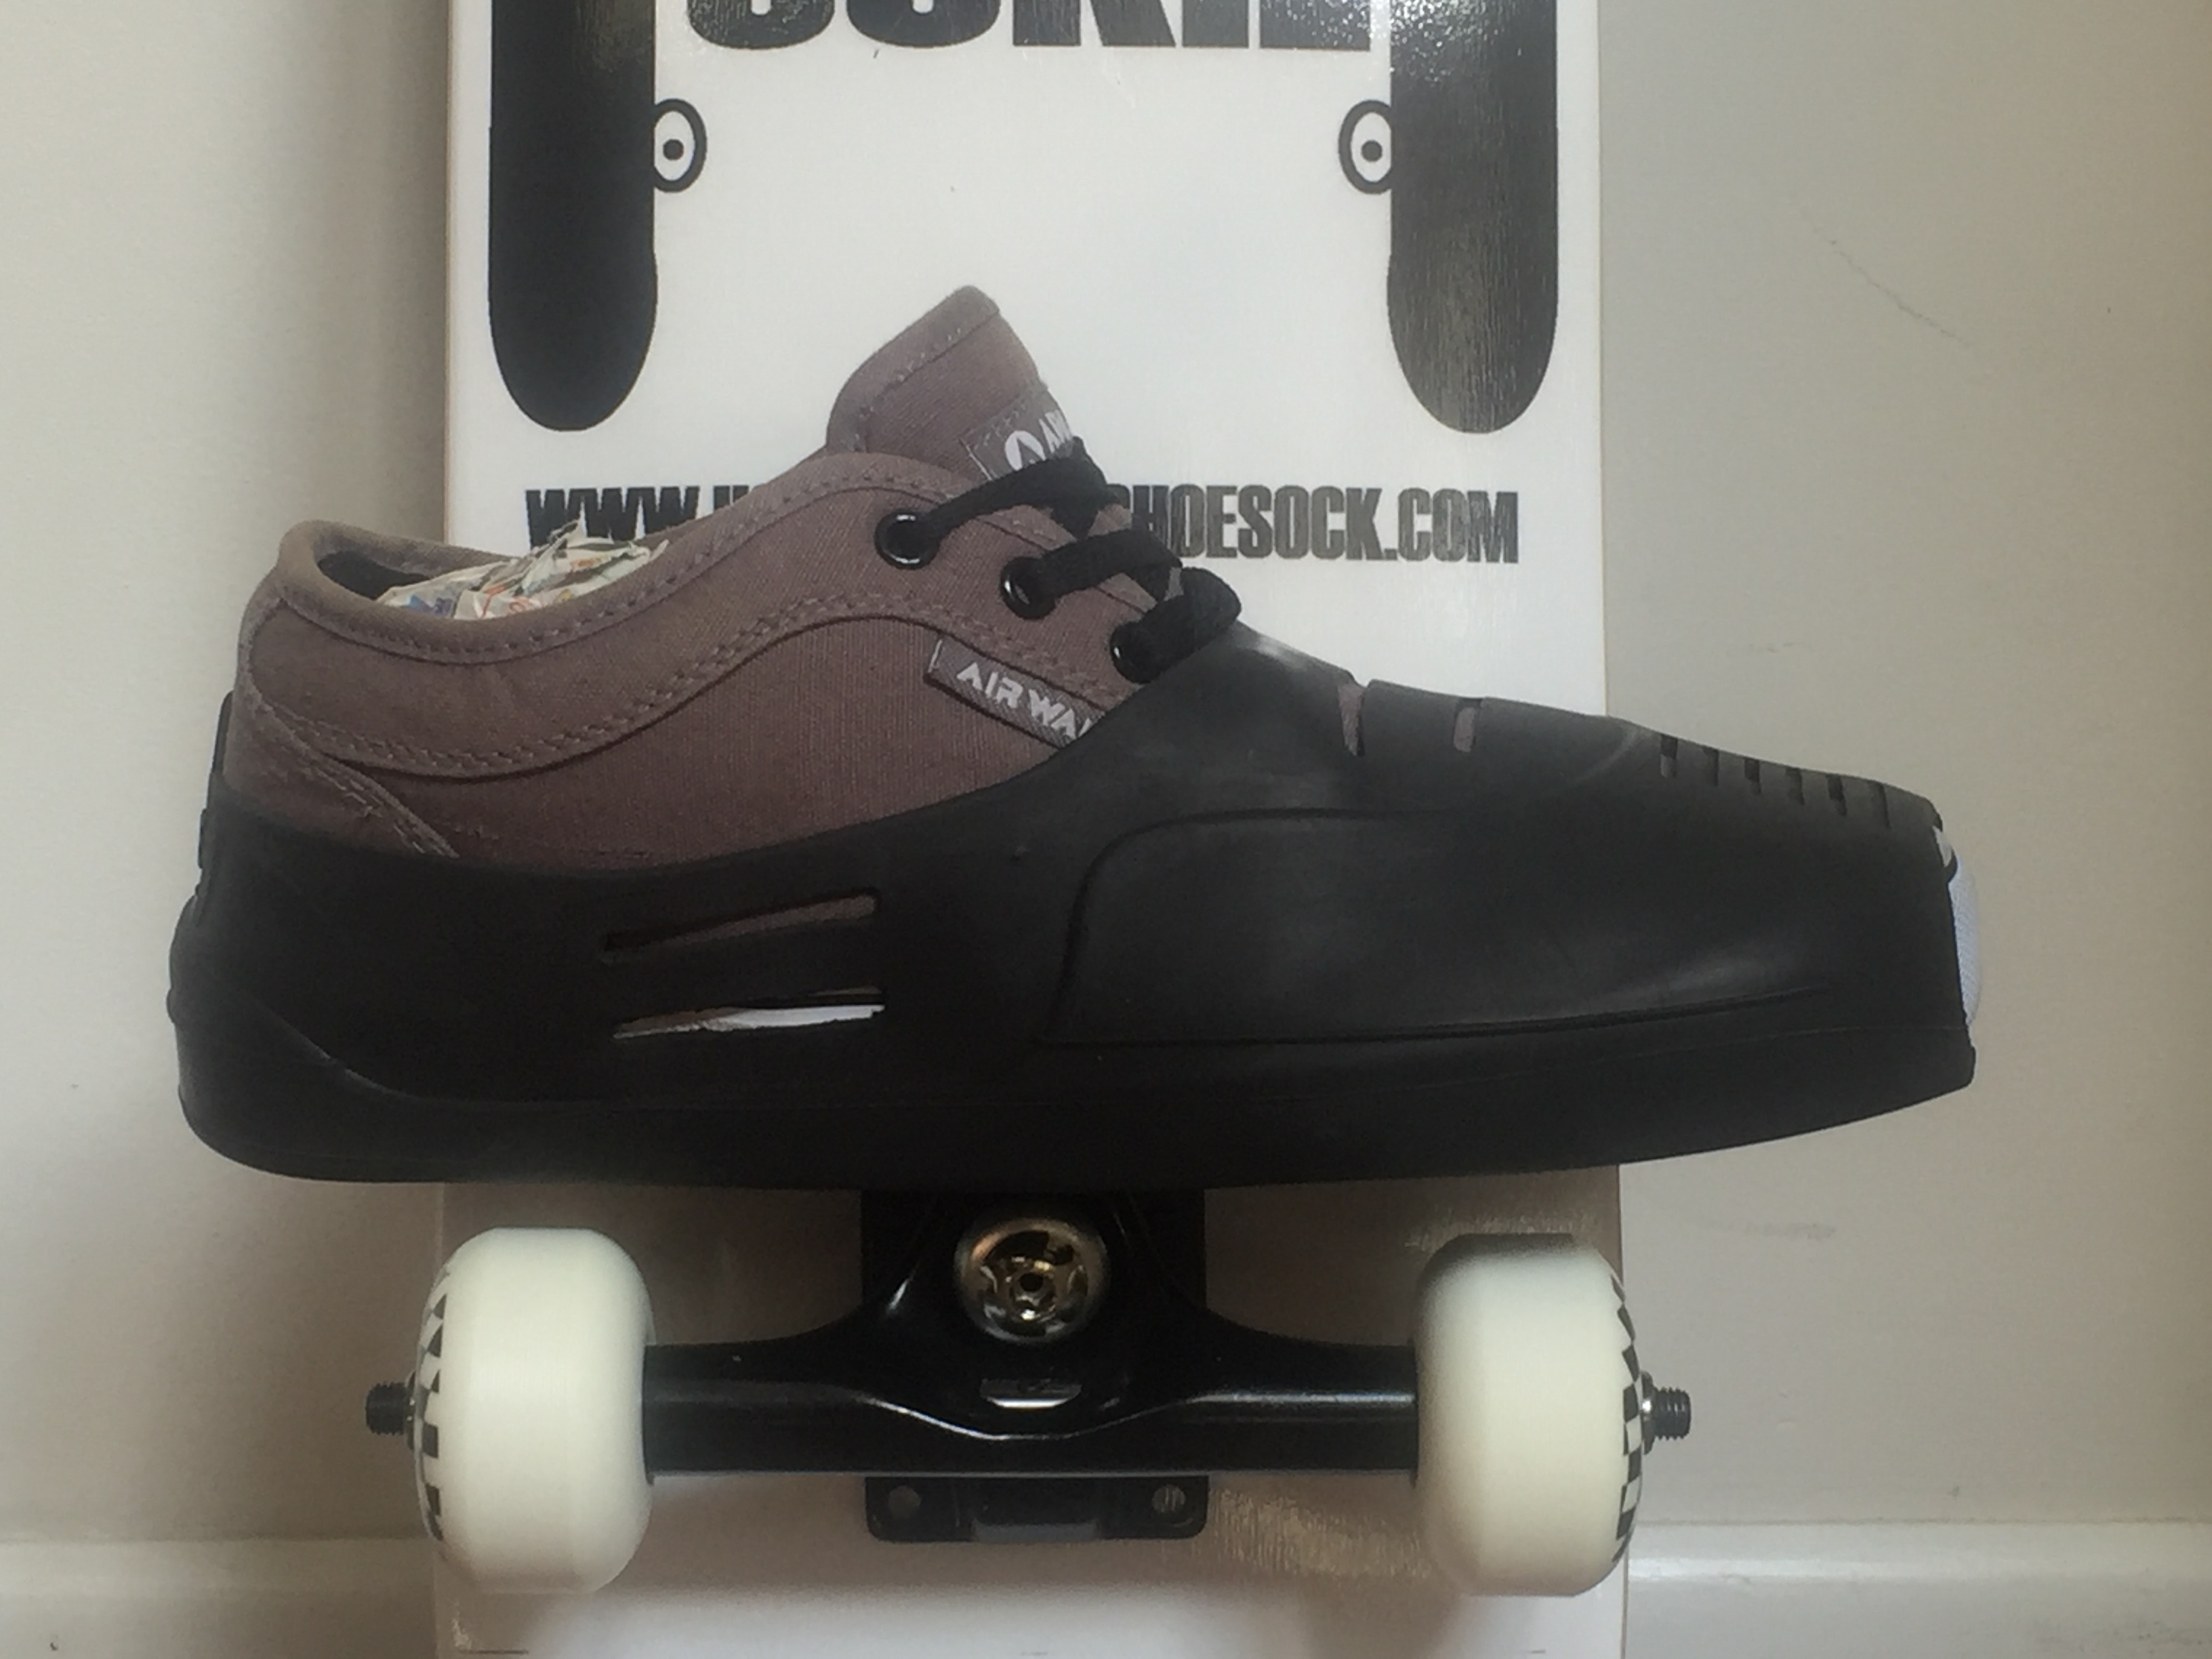 Two Wheel Roller Shoe With Roller Skates Strap On